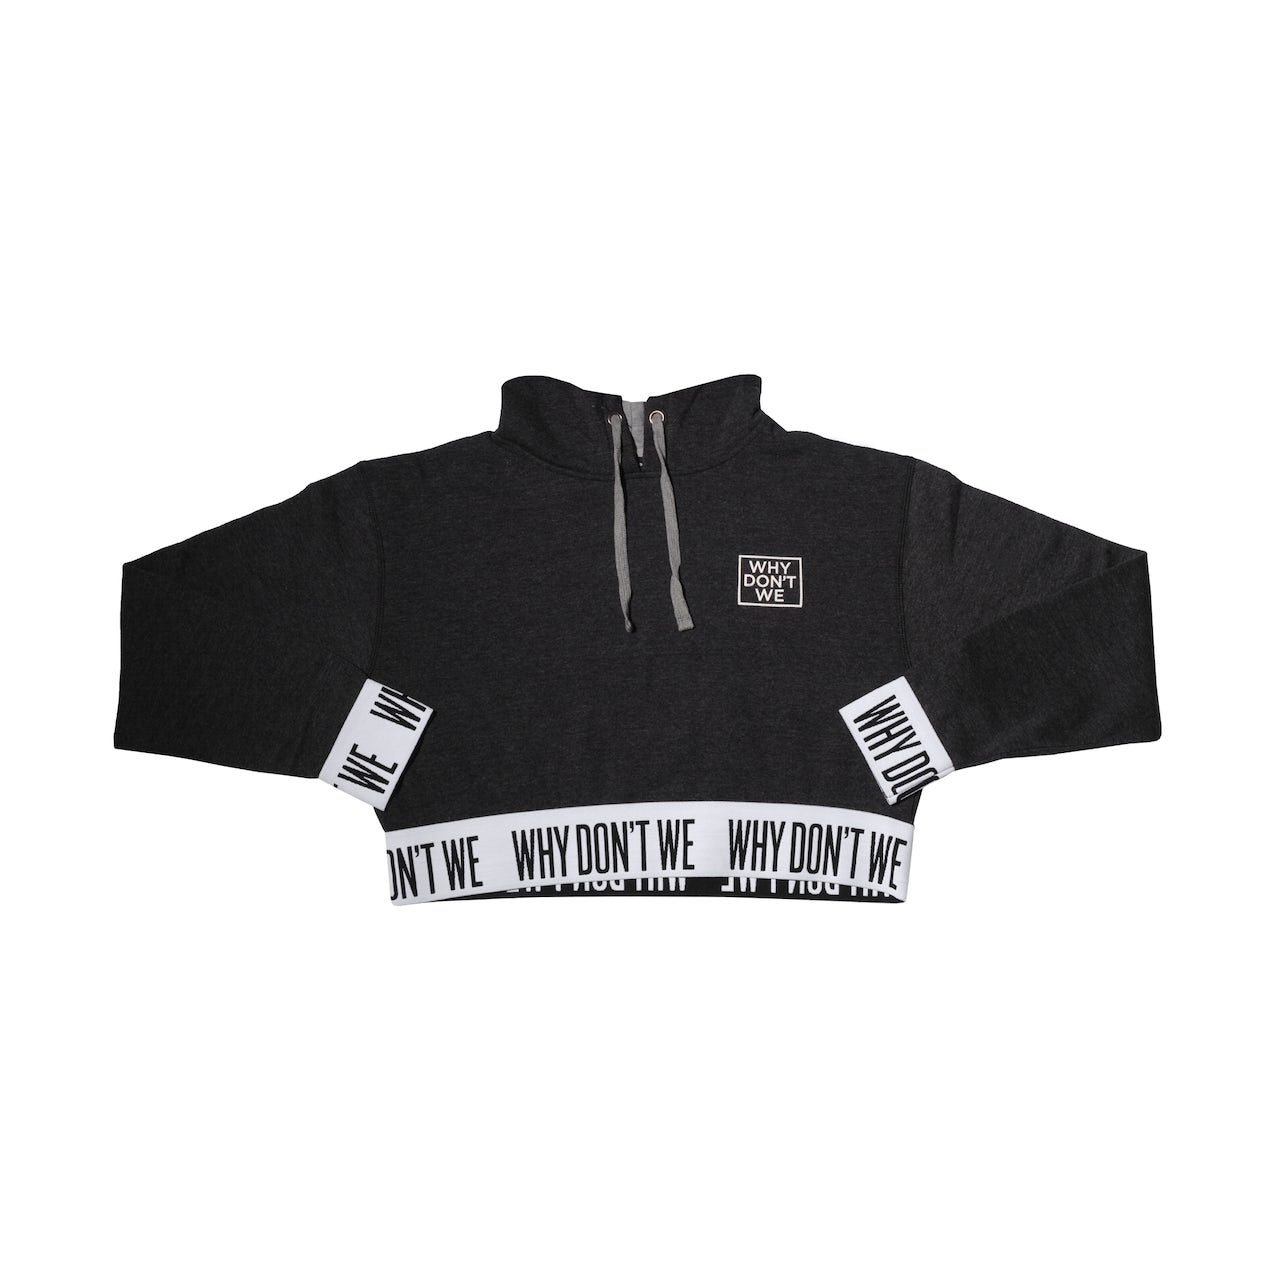 64e7c2a0d Why Don't We. Crop Top Hoodie (Black)